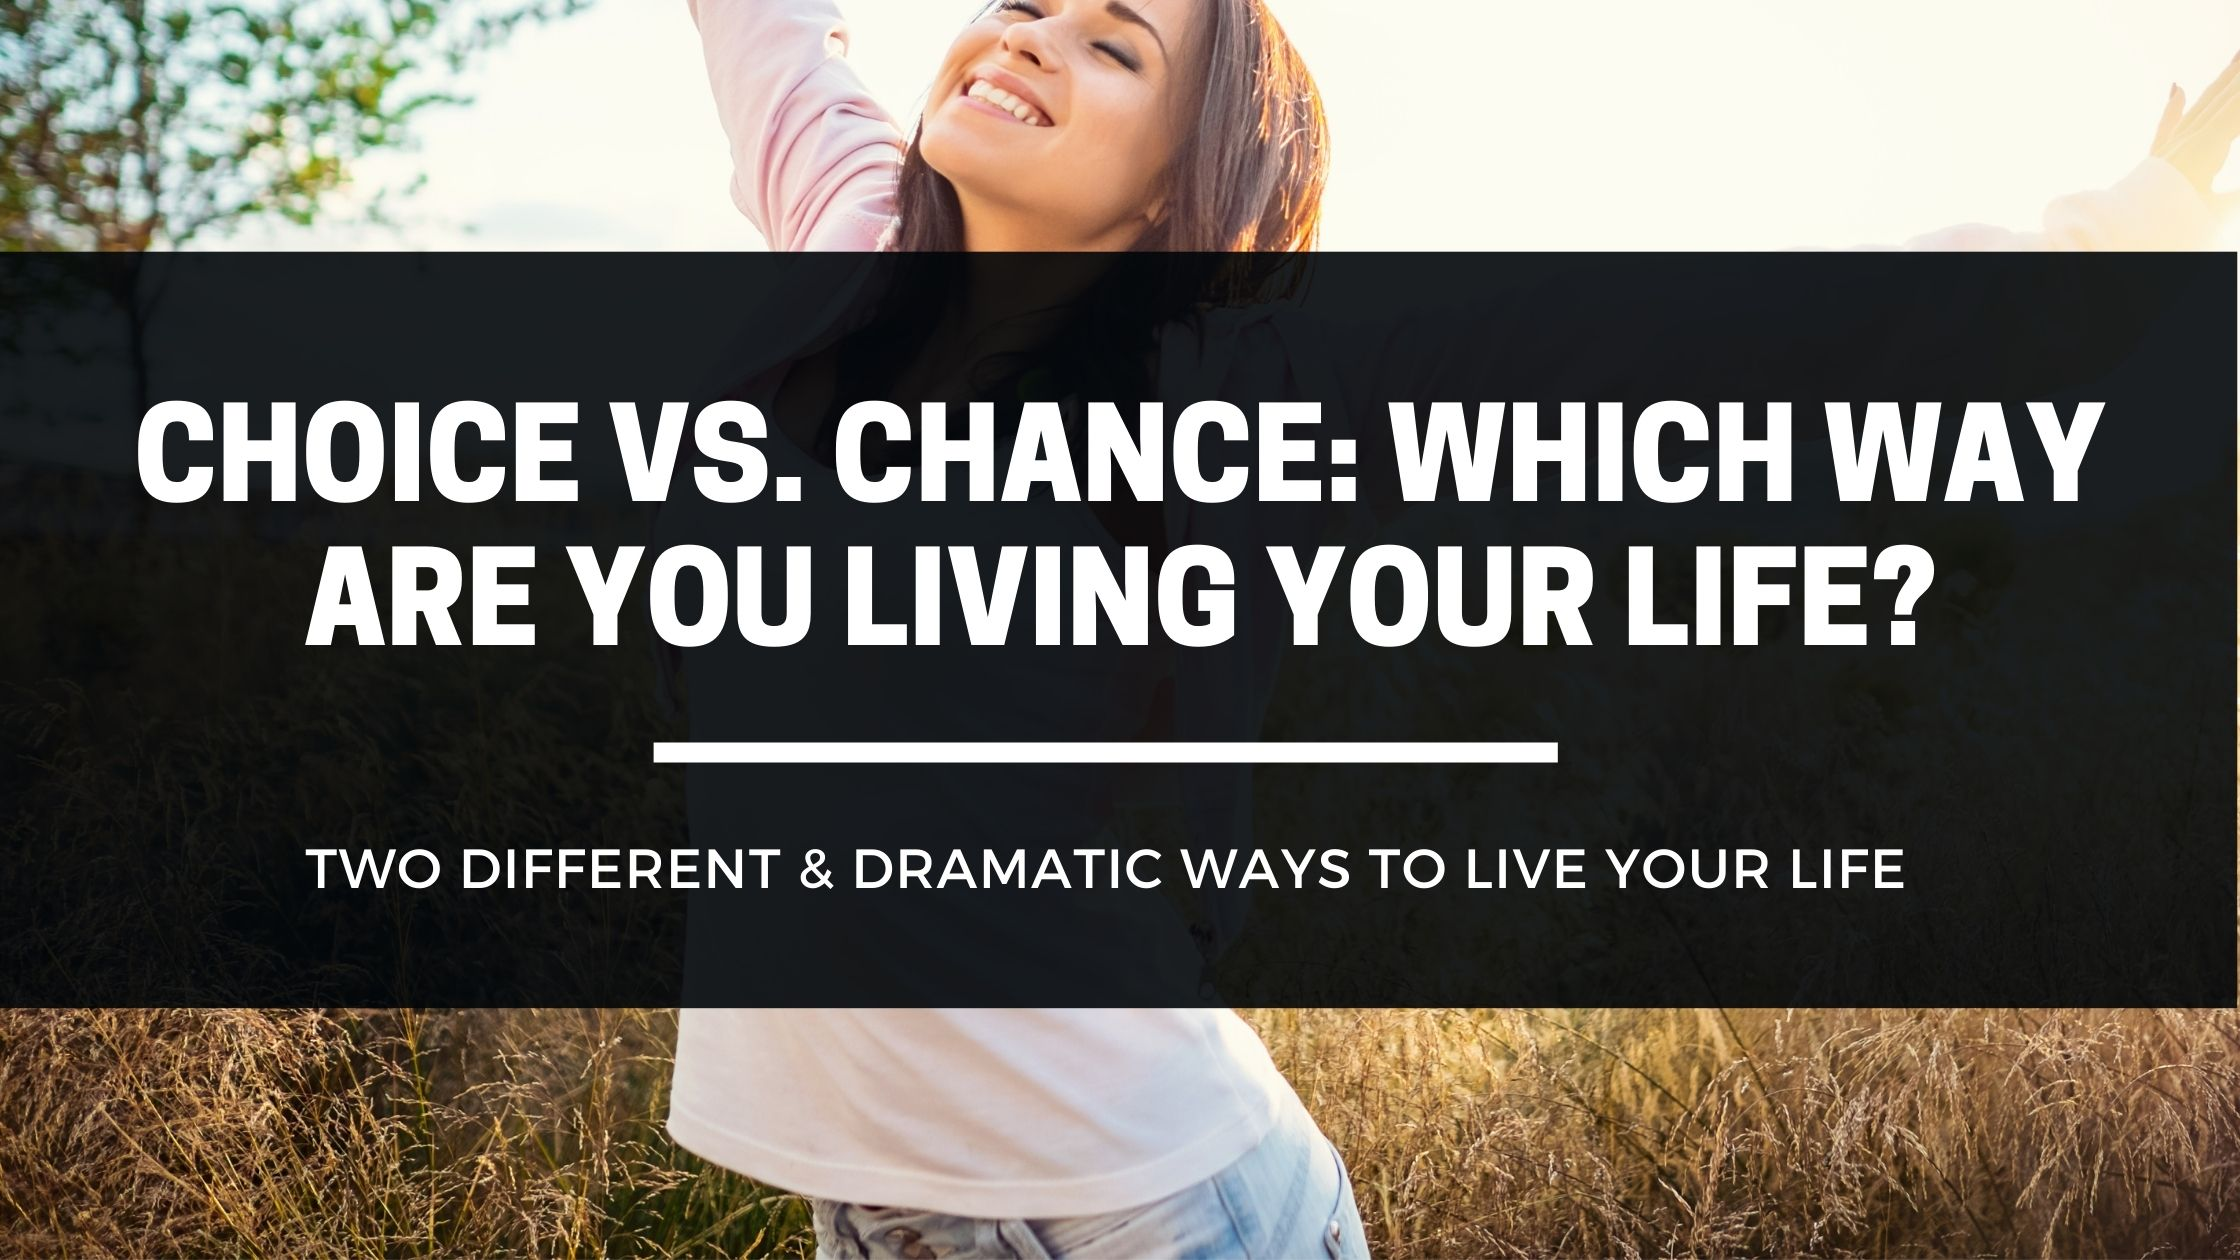 Choice vs Chance - Which Way Are You Living Your Life?